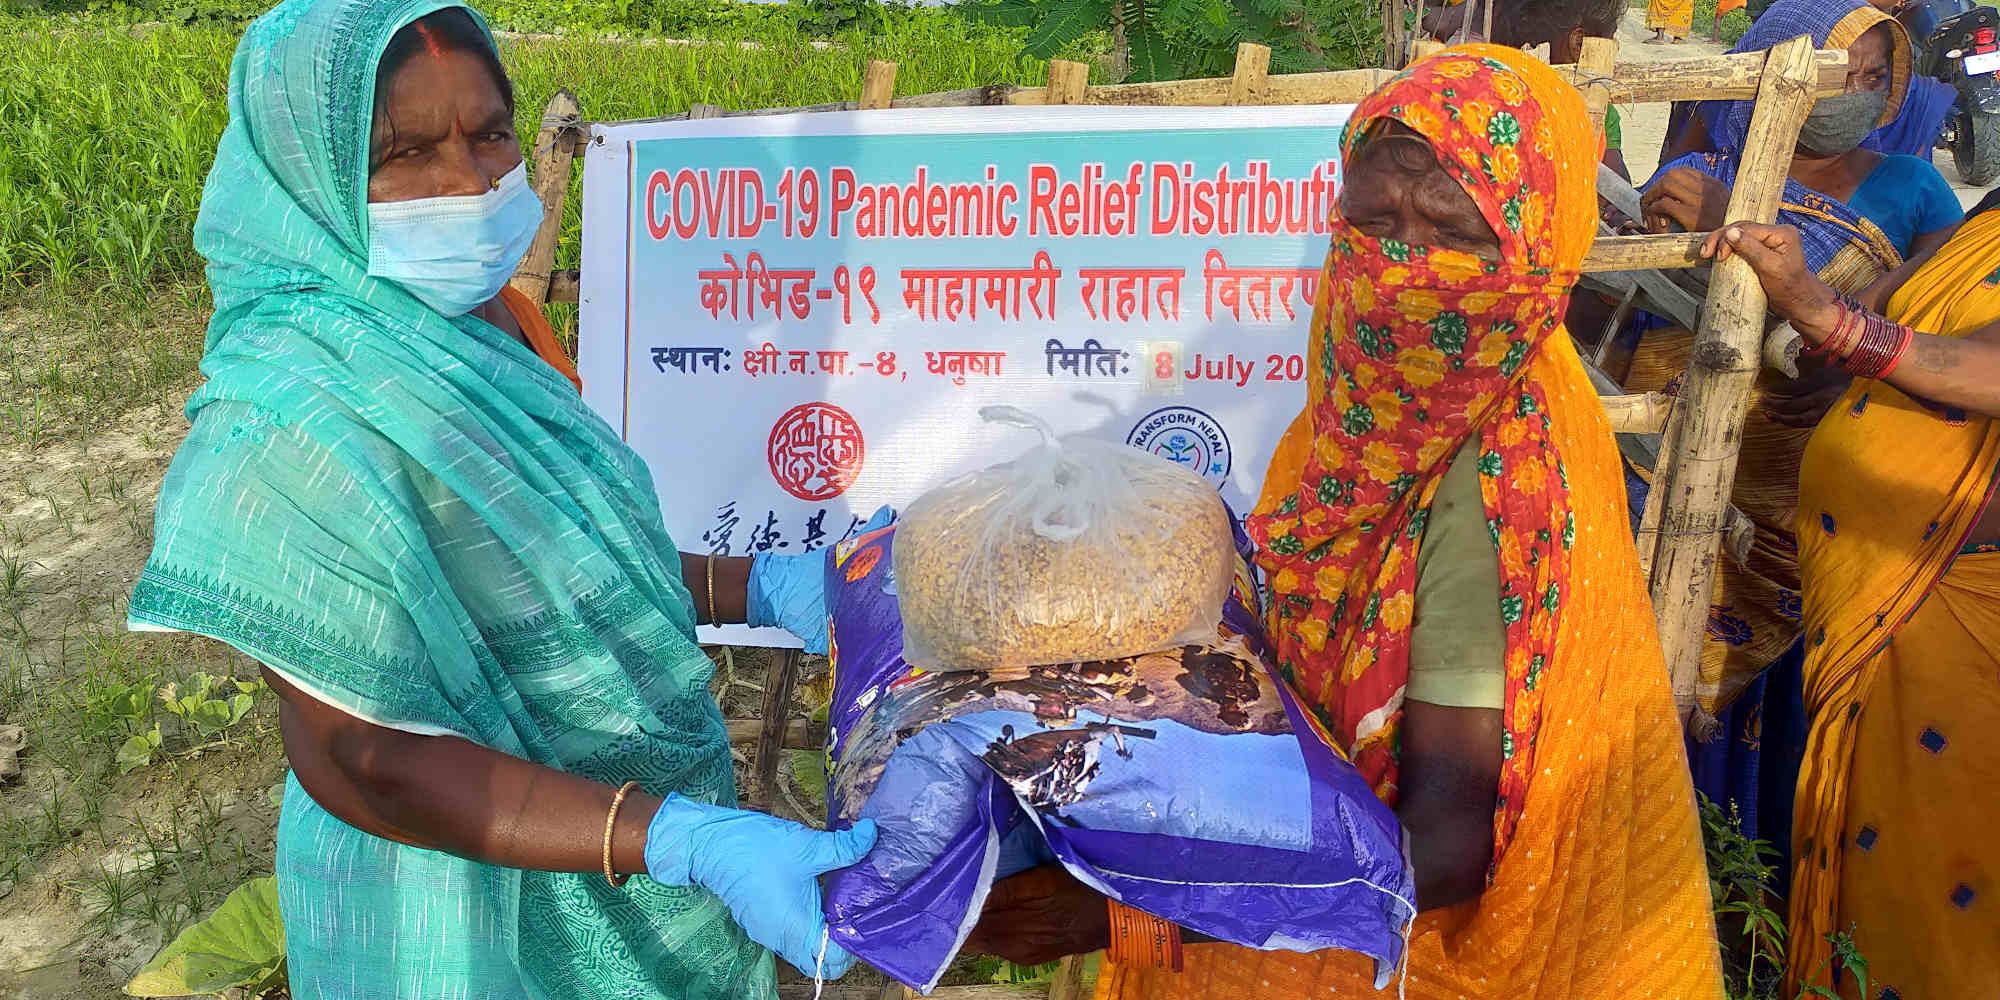 Nepalese women receive rice and food support during the Covid-19 pandemic